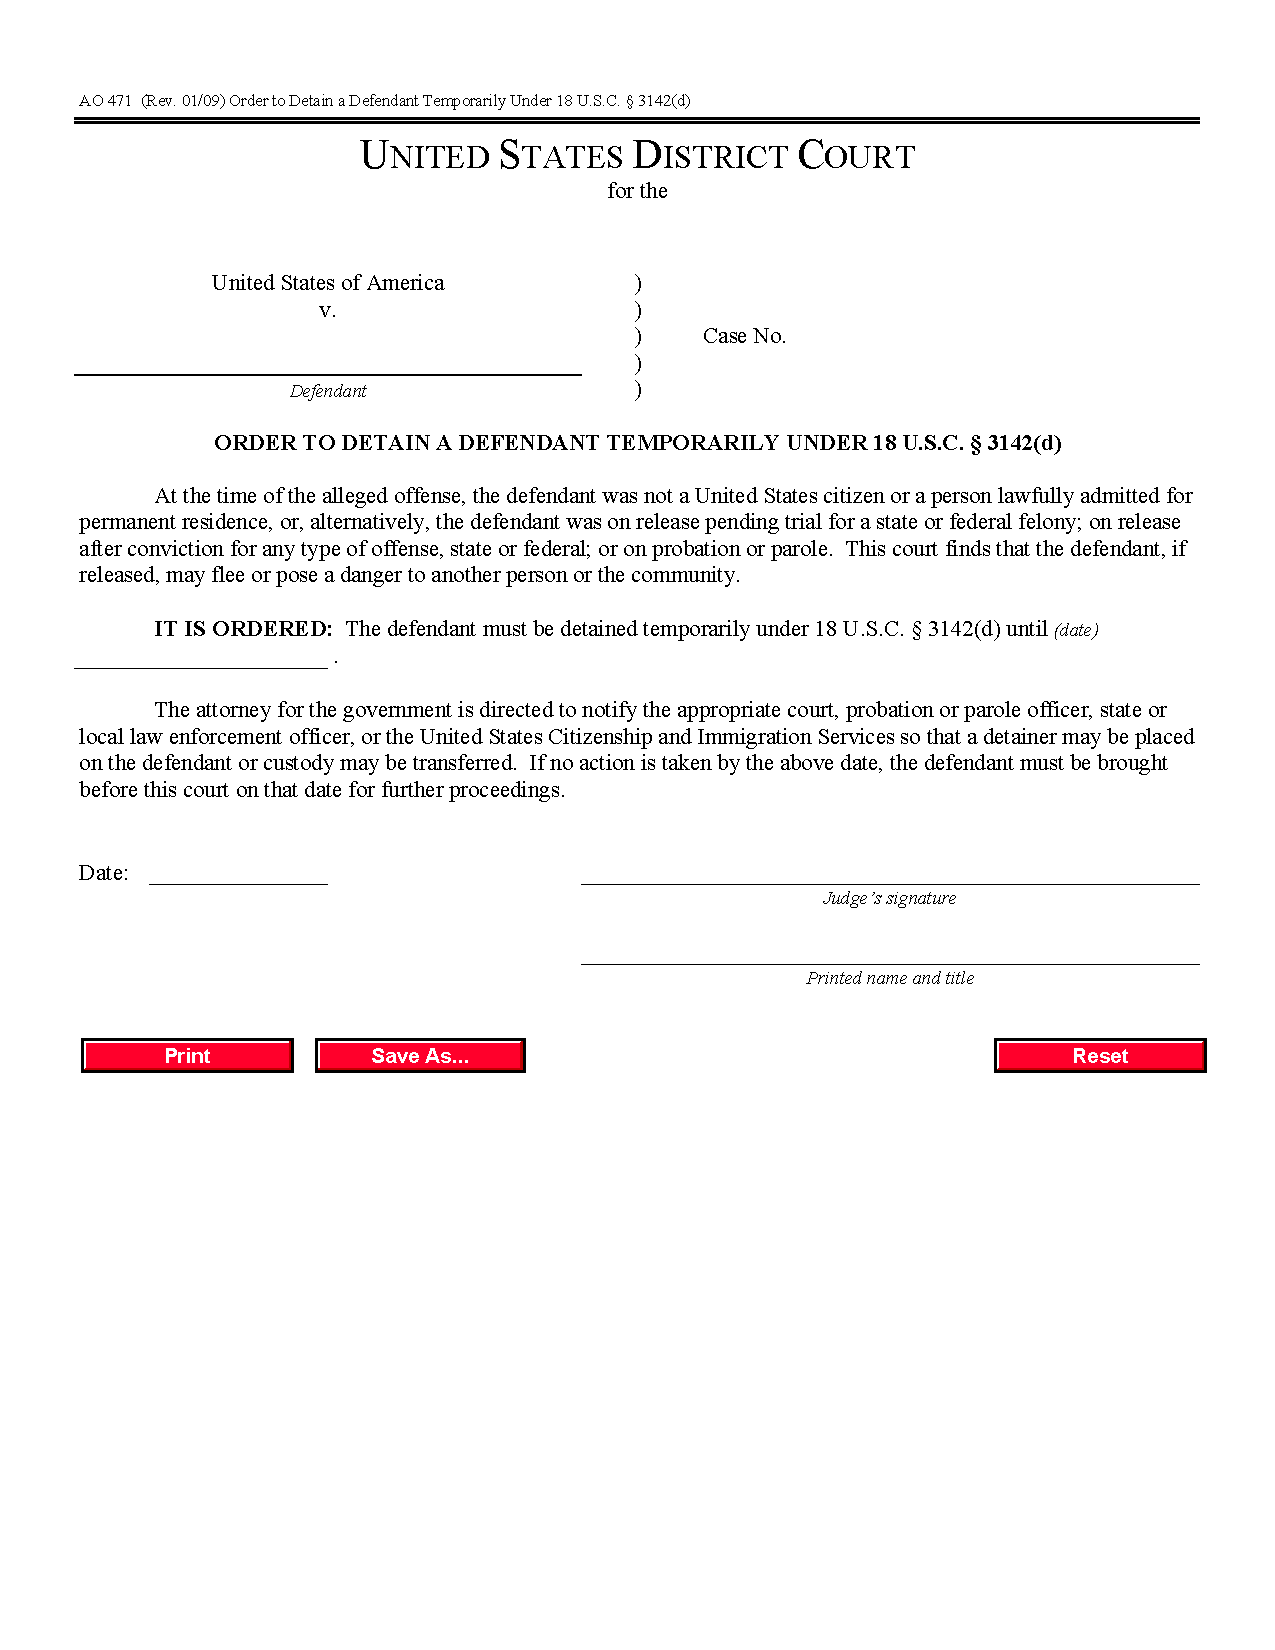 Form Ao 471 Order To Detain A Defendant Temporarily Under Throughout Court Dates By Defendant Name